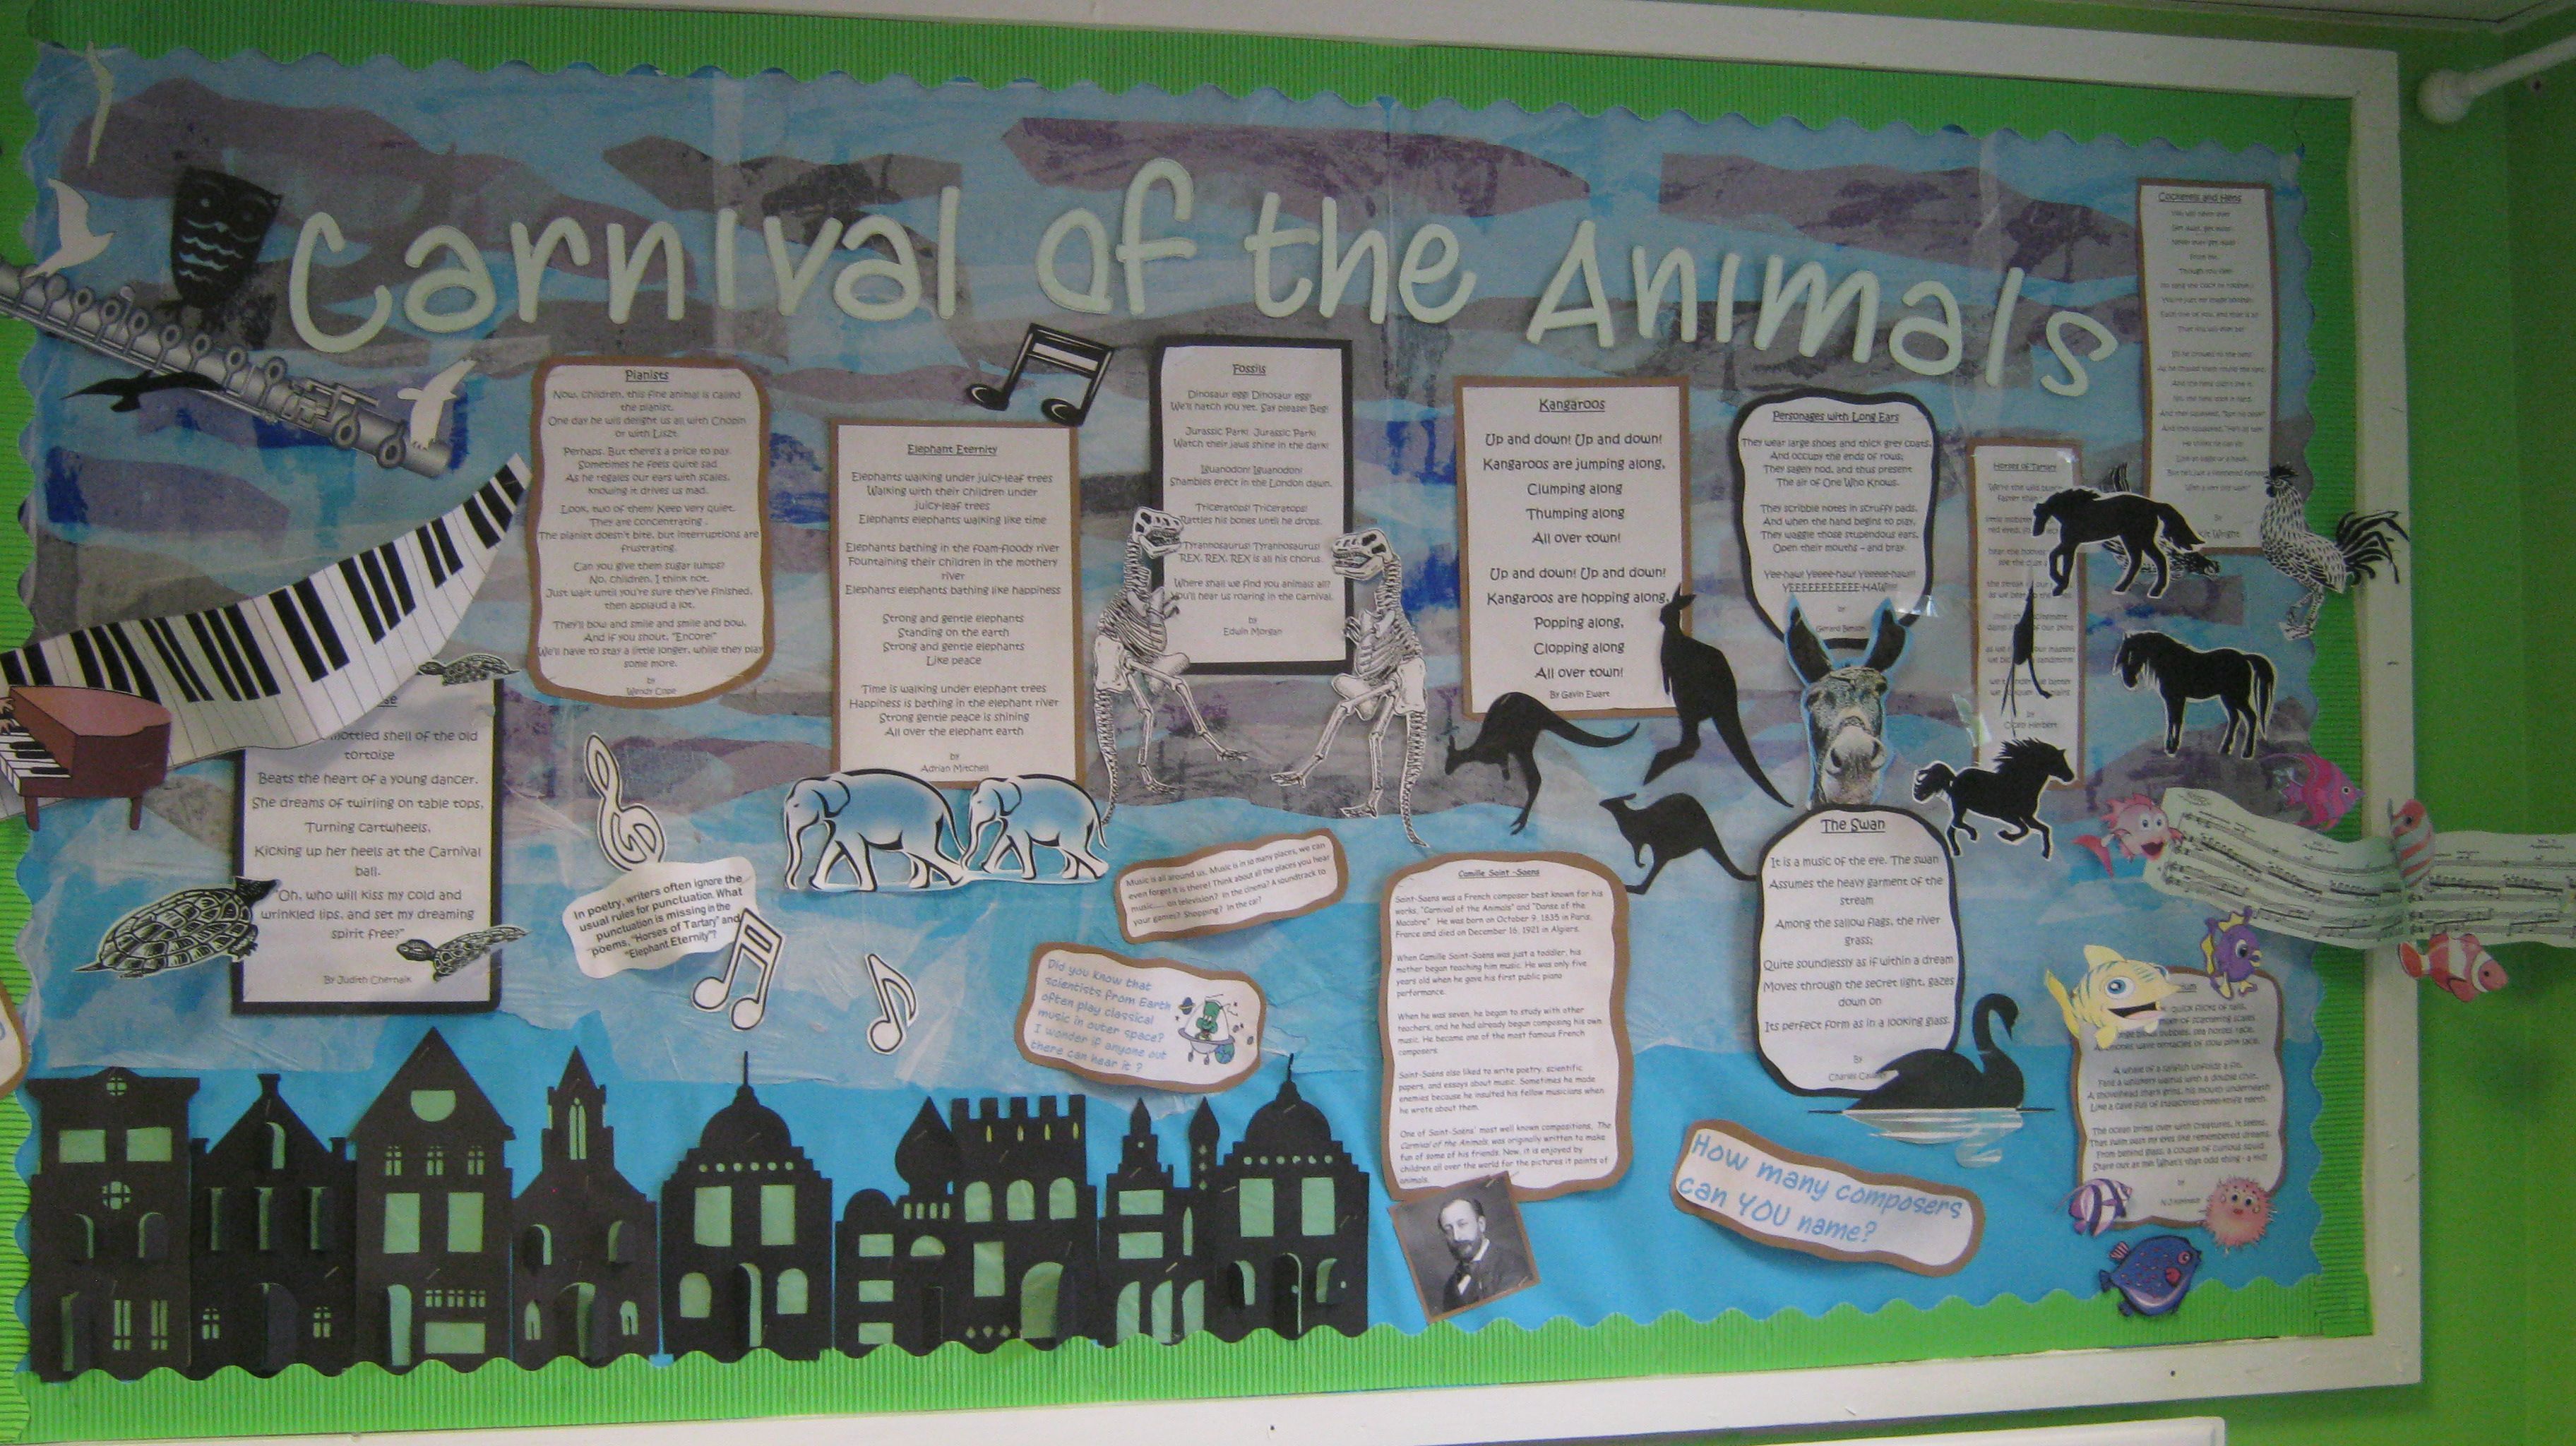 This Library Display Board Represented The Carnival Of The